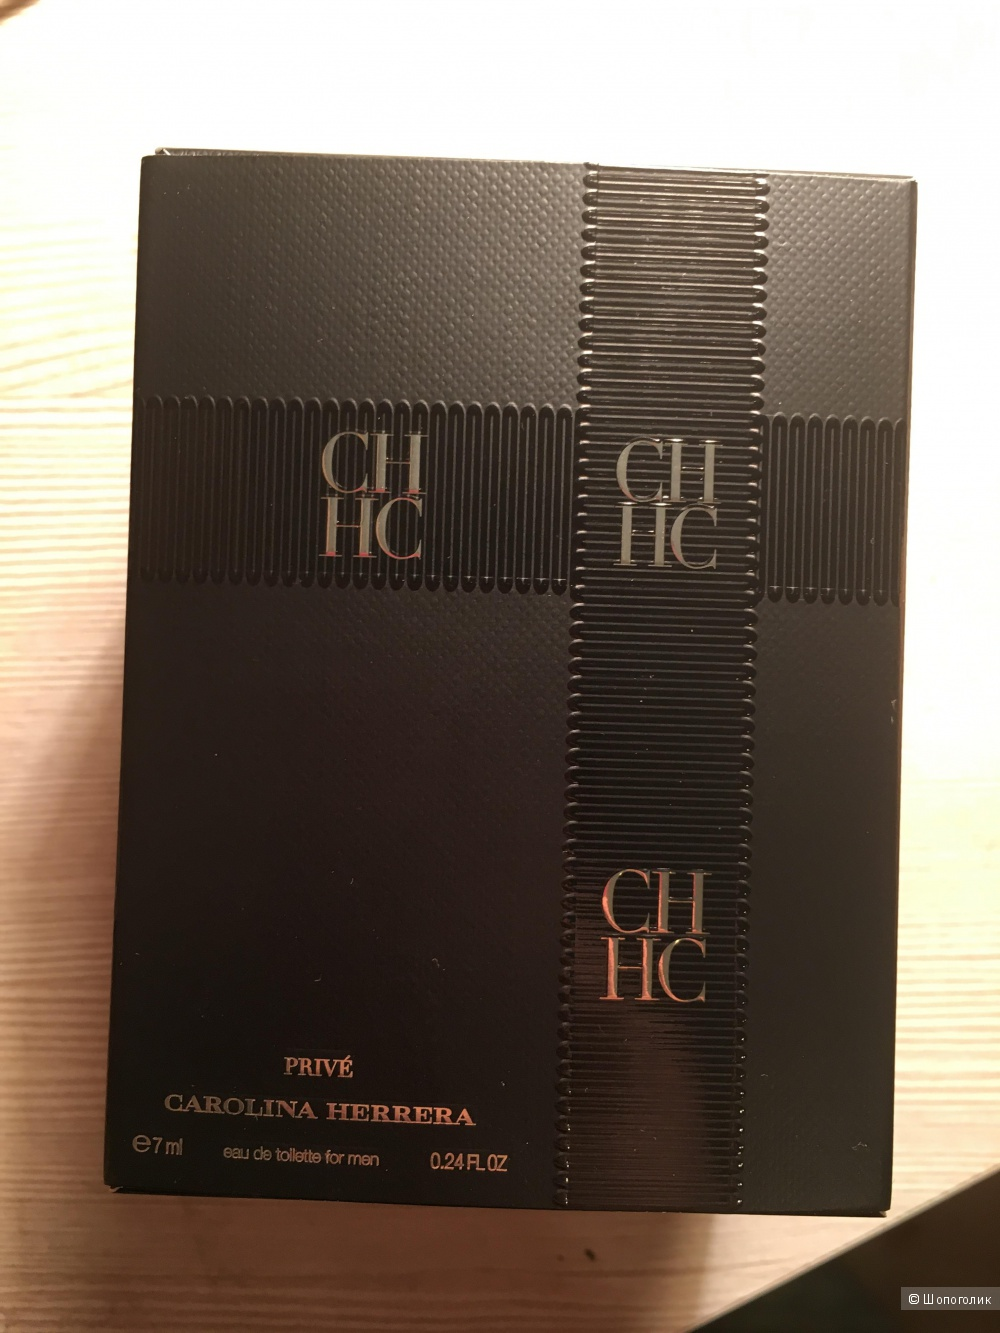 Набор парфюма Carolina Herrera Prive 7ml и Carolina Herrera CH 8ml